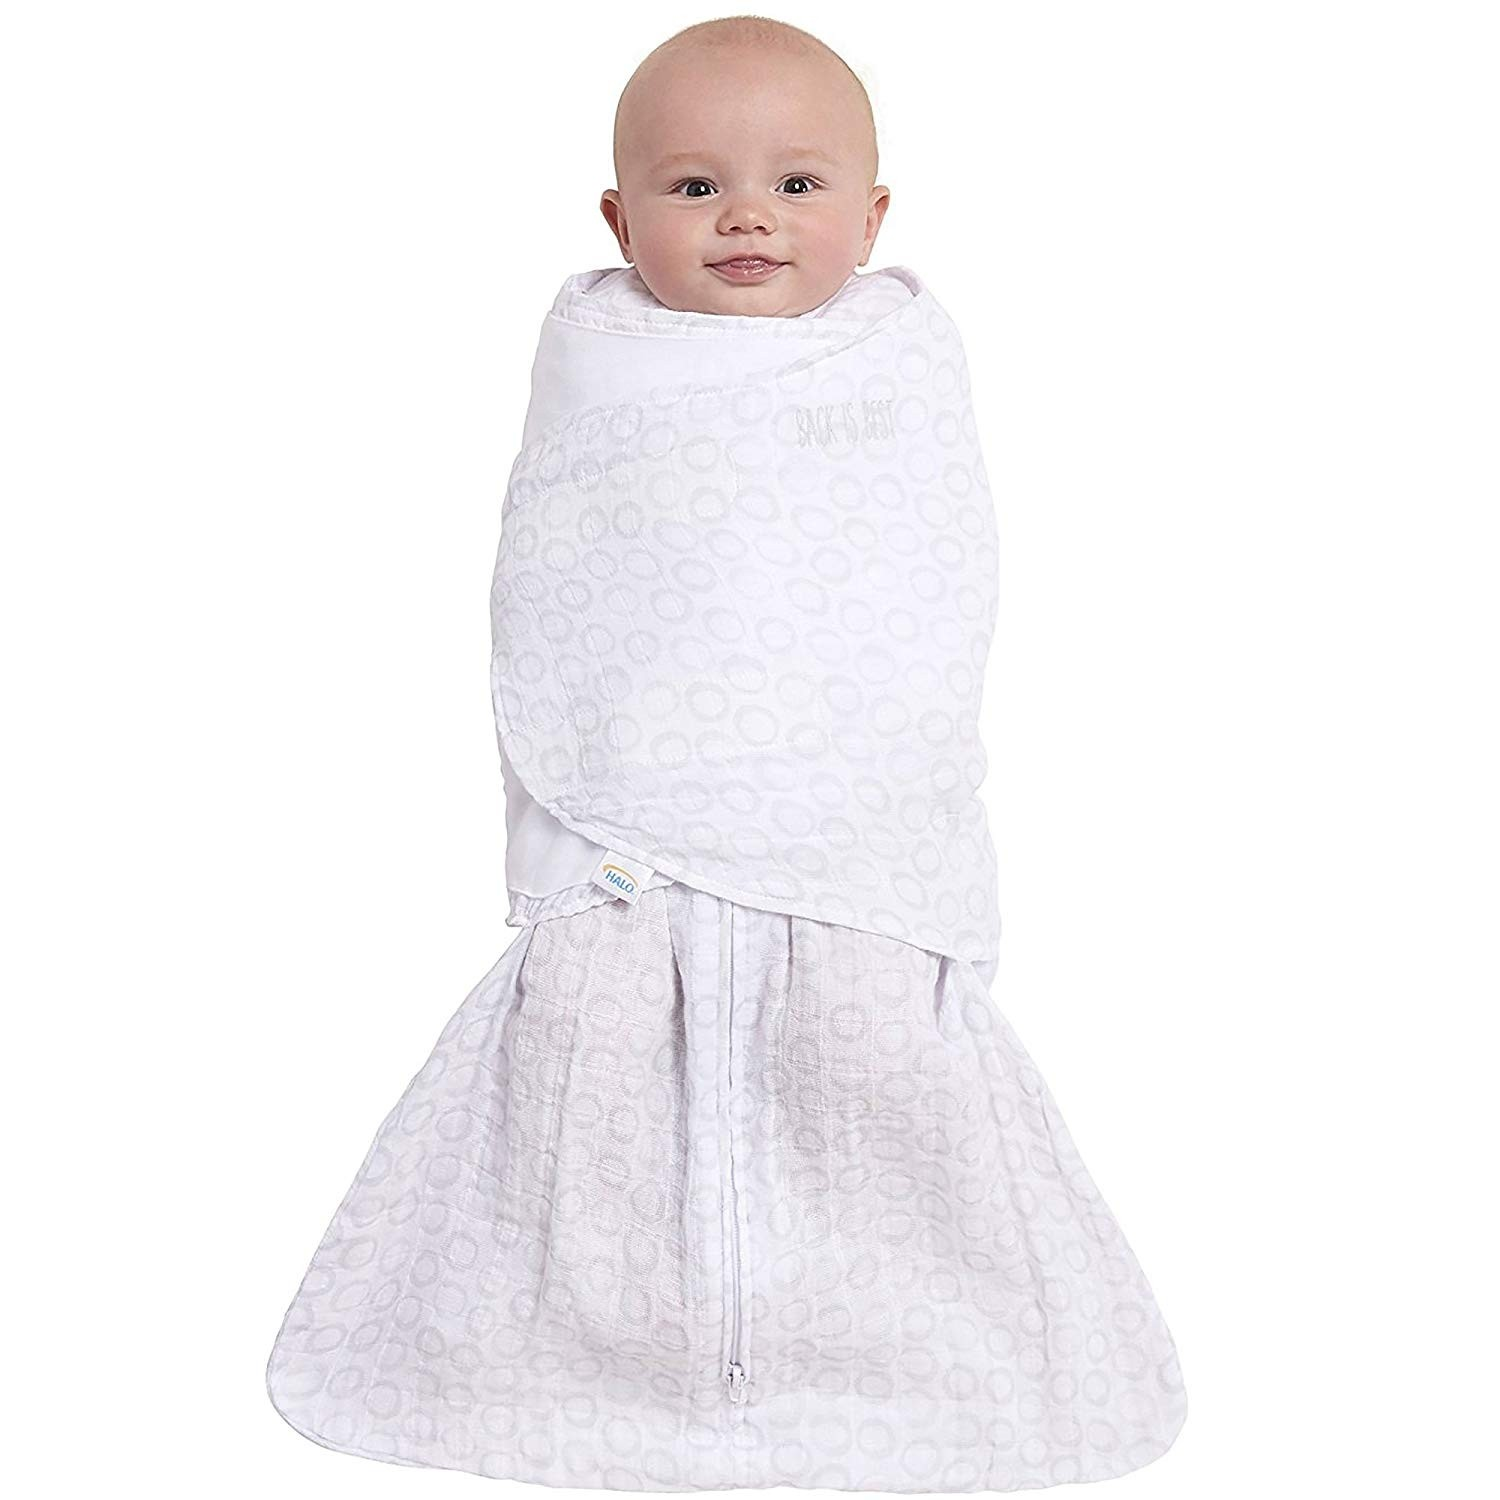 huge discount 0adb8 3f9e7 Halo Sleepsack Swaddle Grey Open Circles - Small